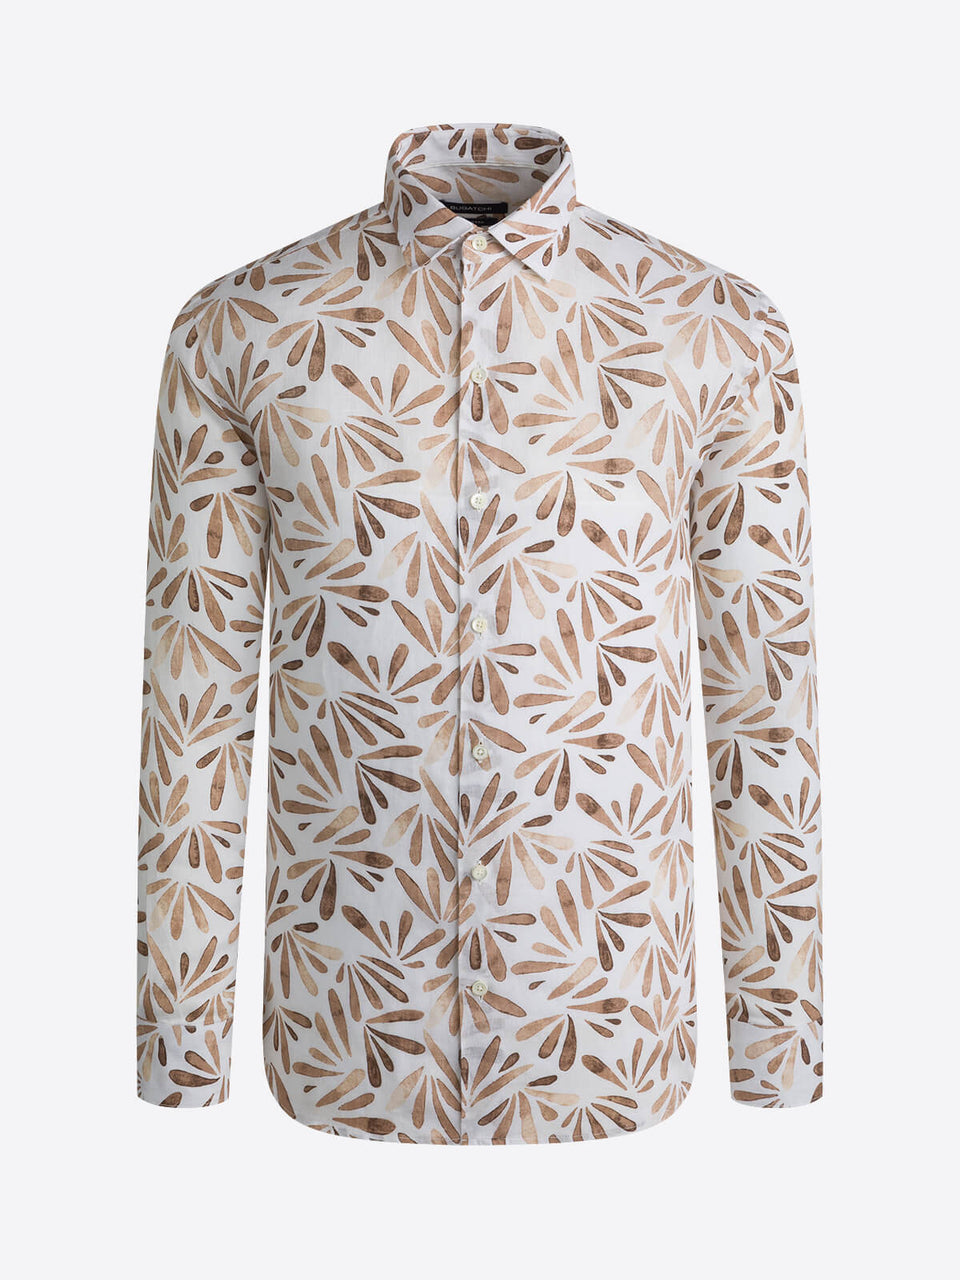 Bugatchi Abstract Print Long Sleeve Shirt - Mocha